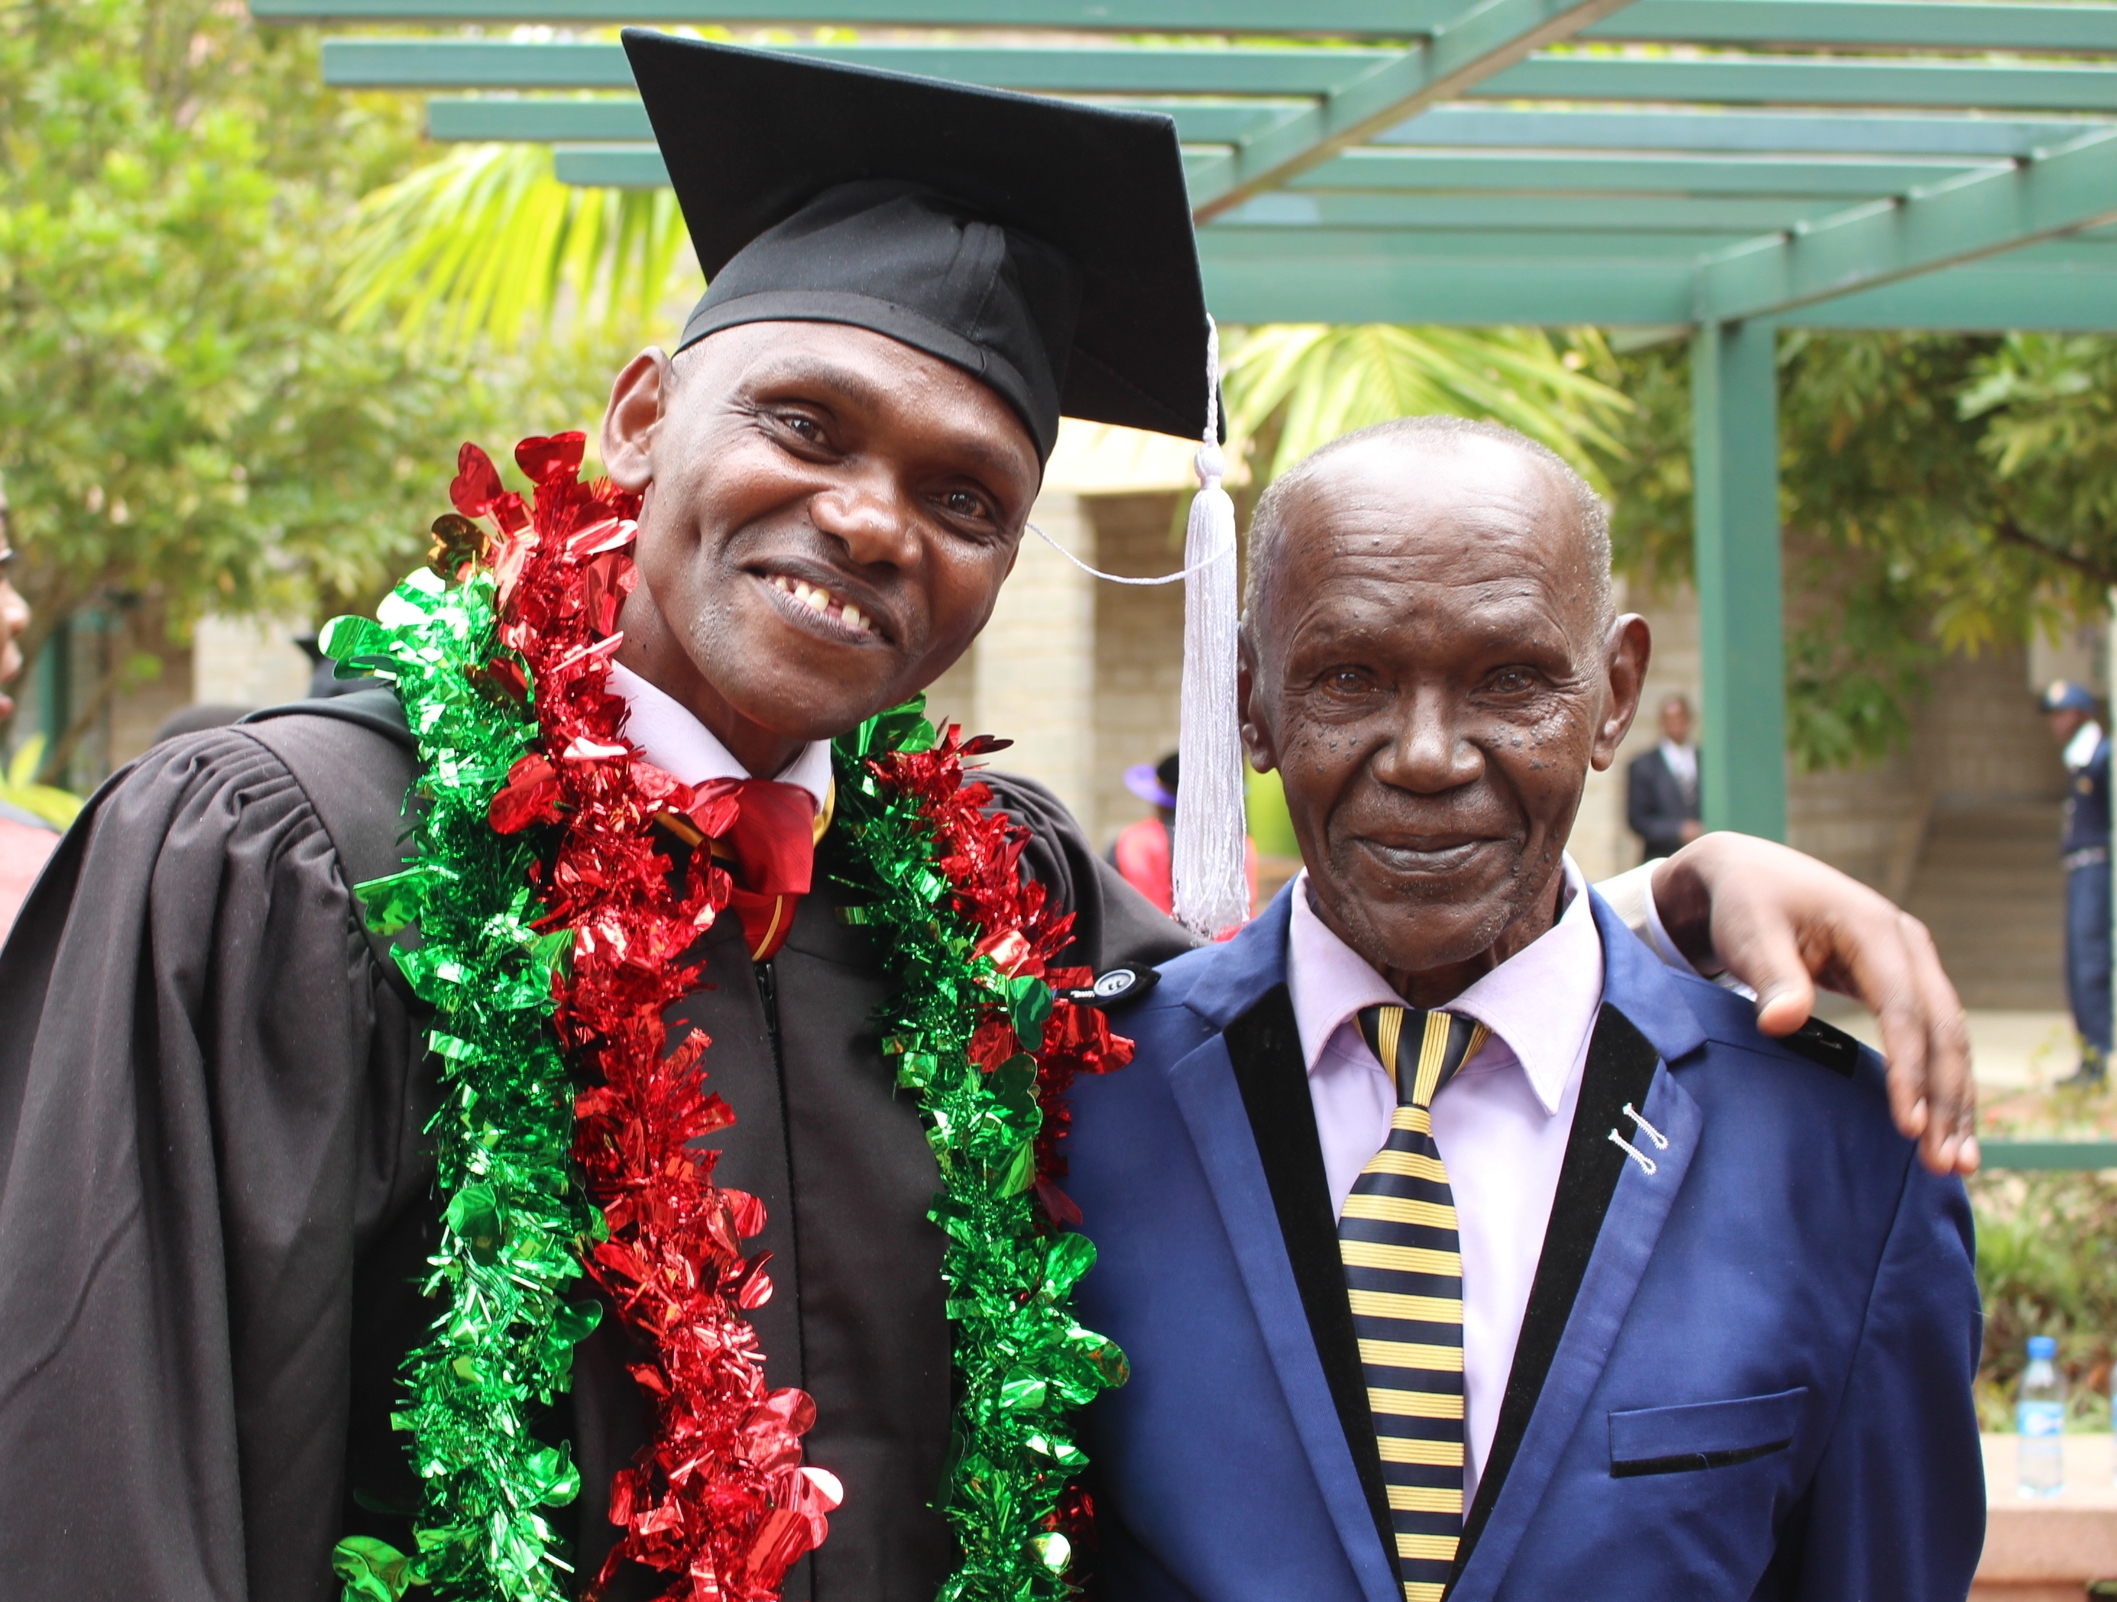 James, pictured with his father, graduated this June.